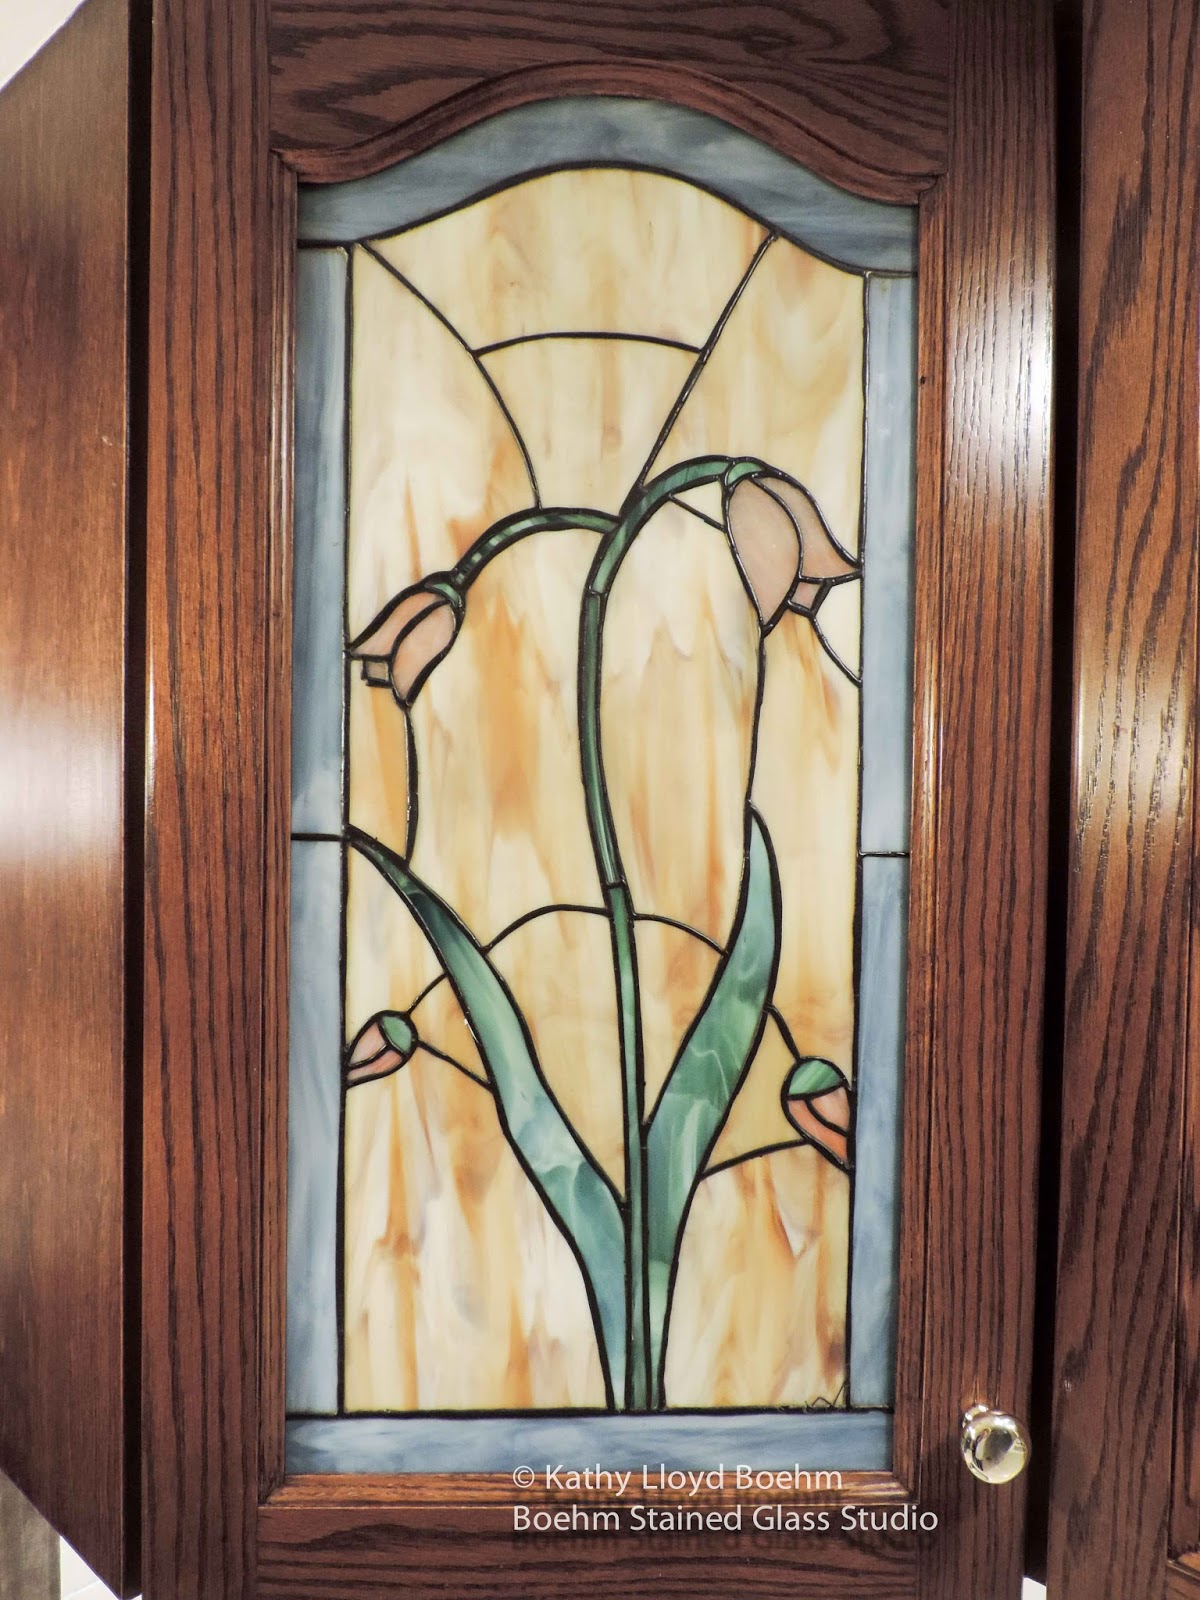 Boehm Stained Glass Blog: Stained Glass Kitchen Cabinet Update